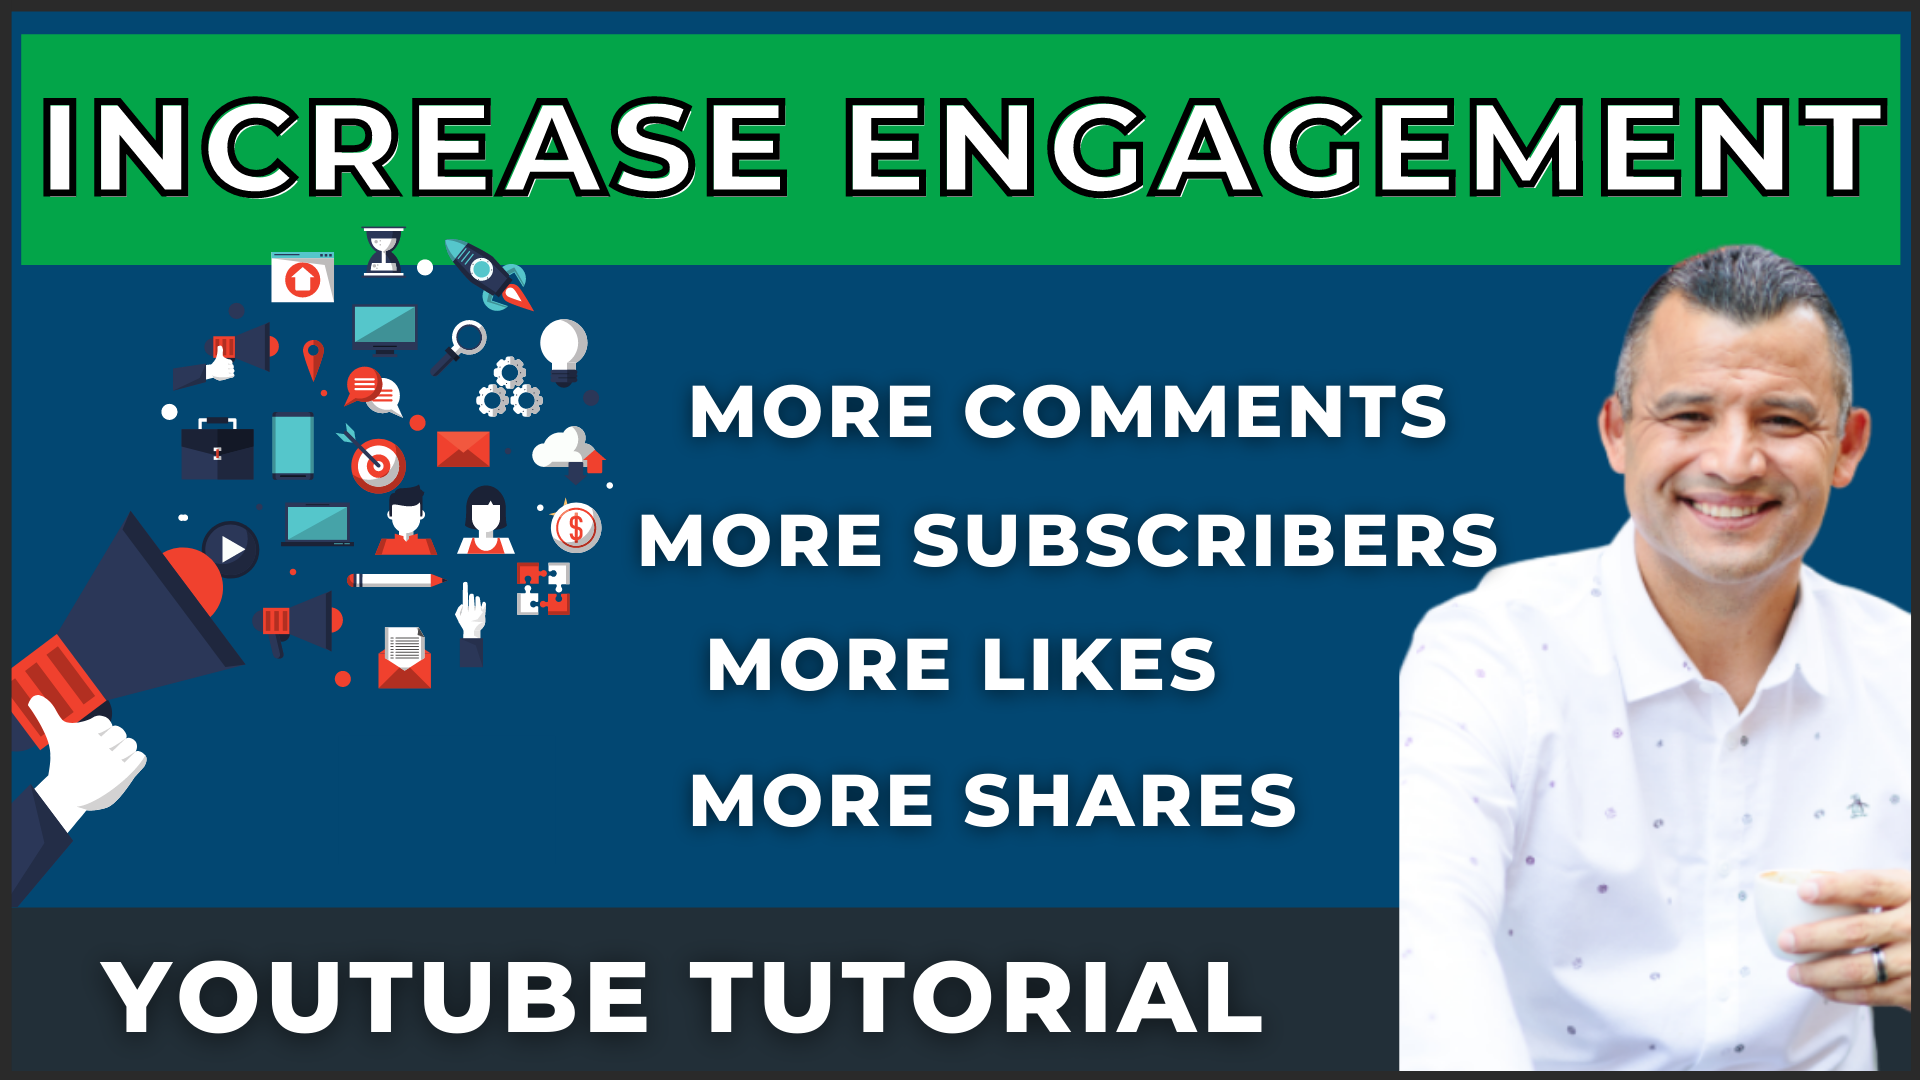 How To Increase Engagement On YouTube and Social Media